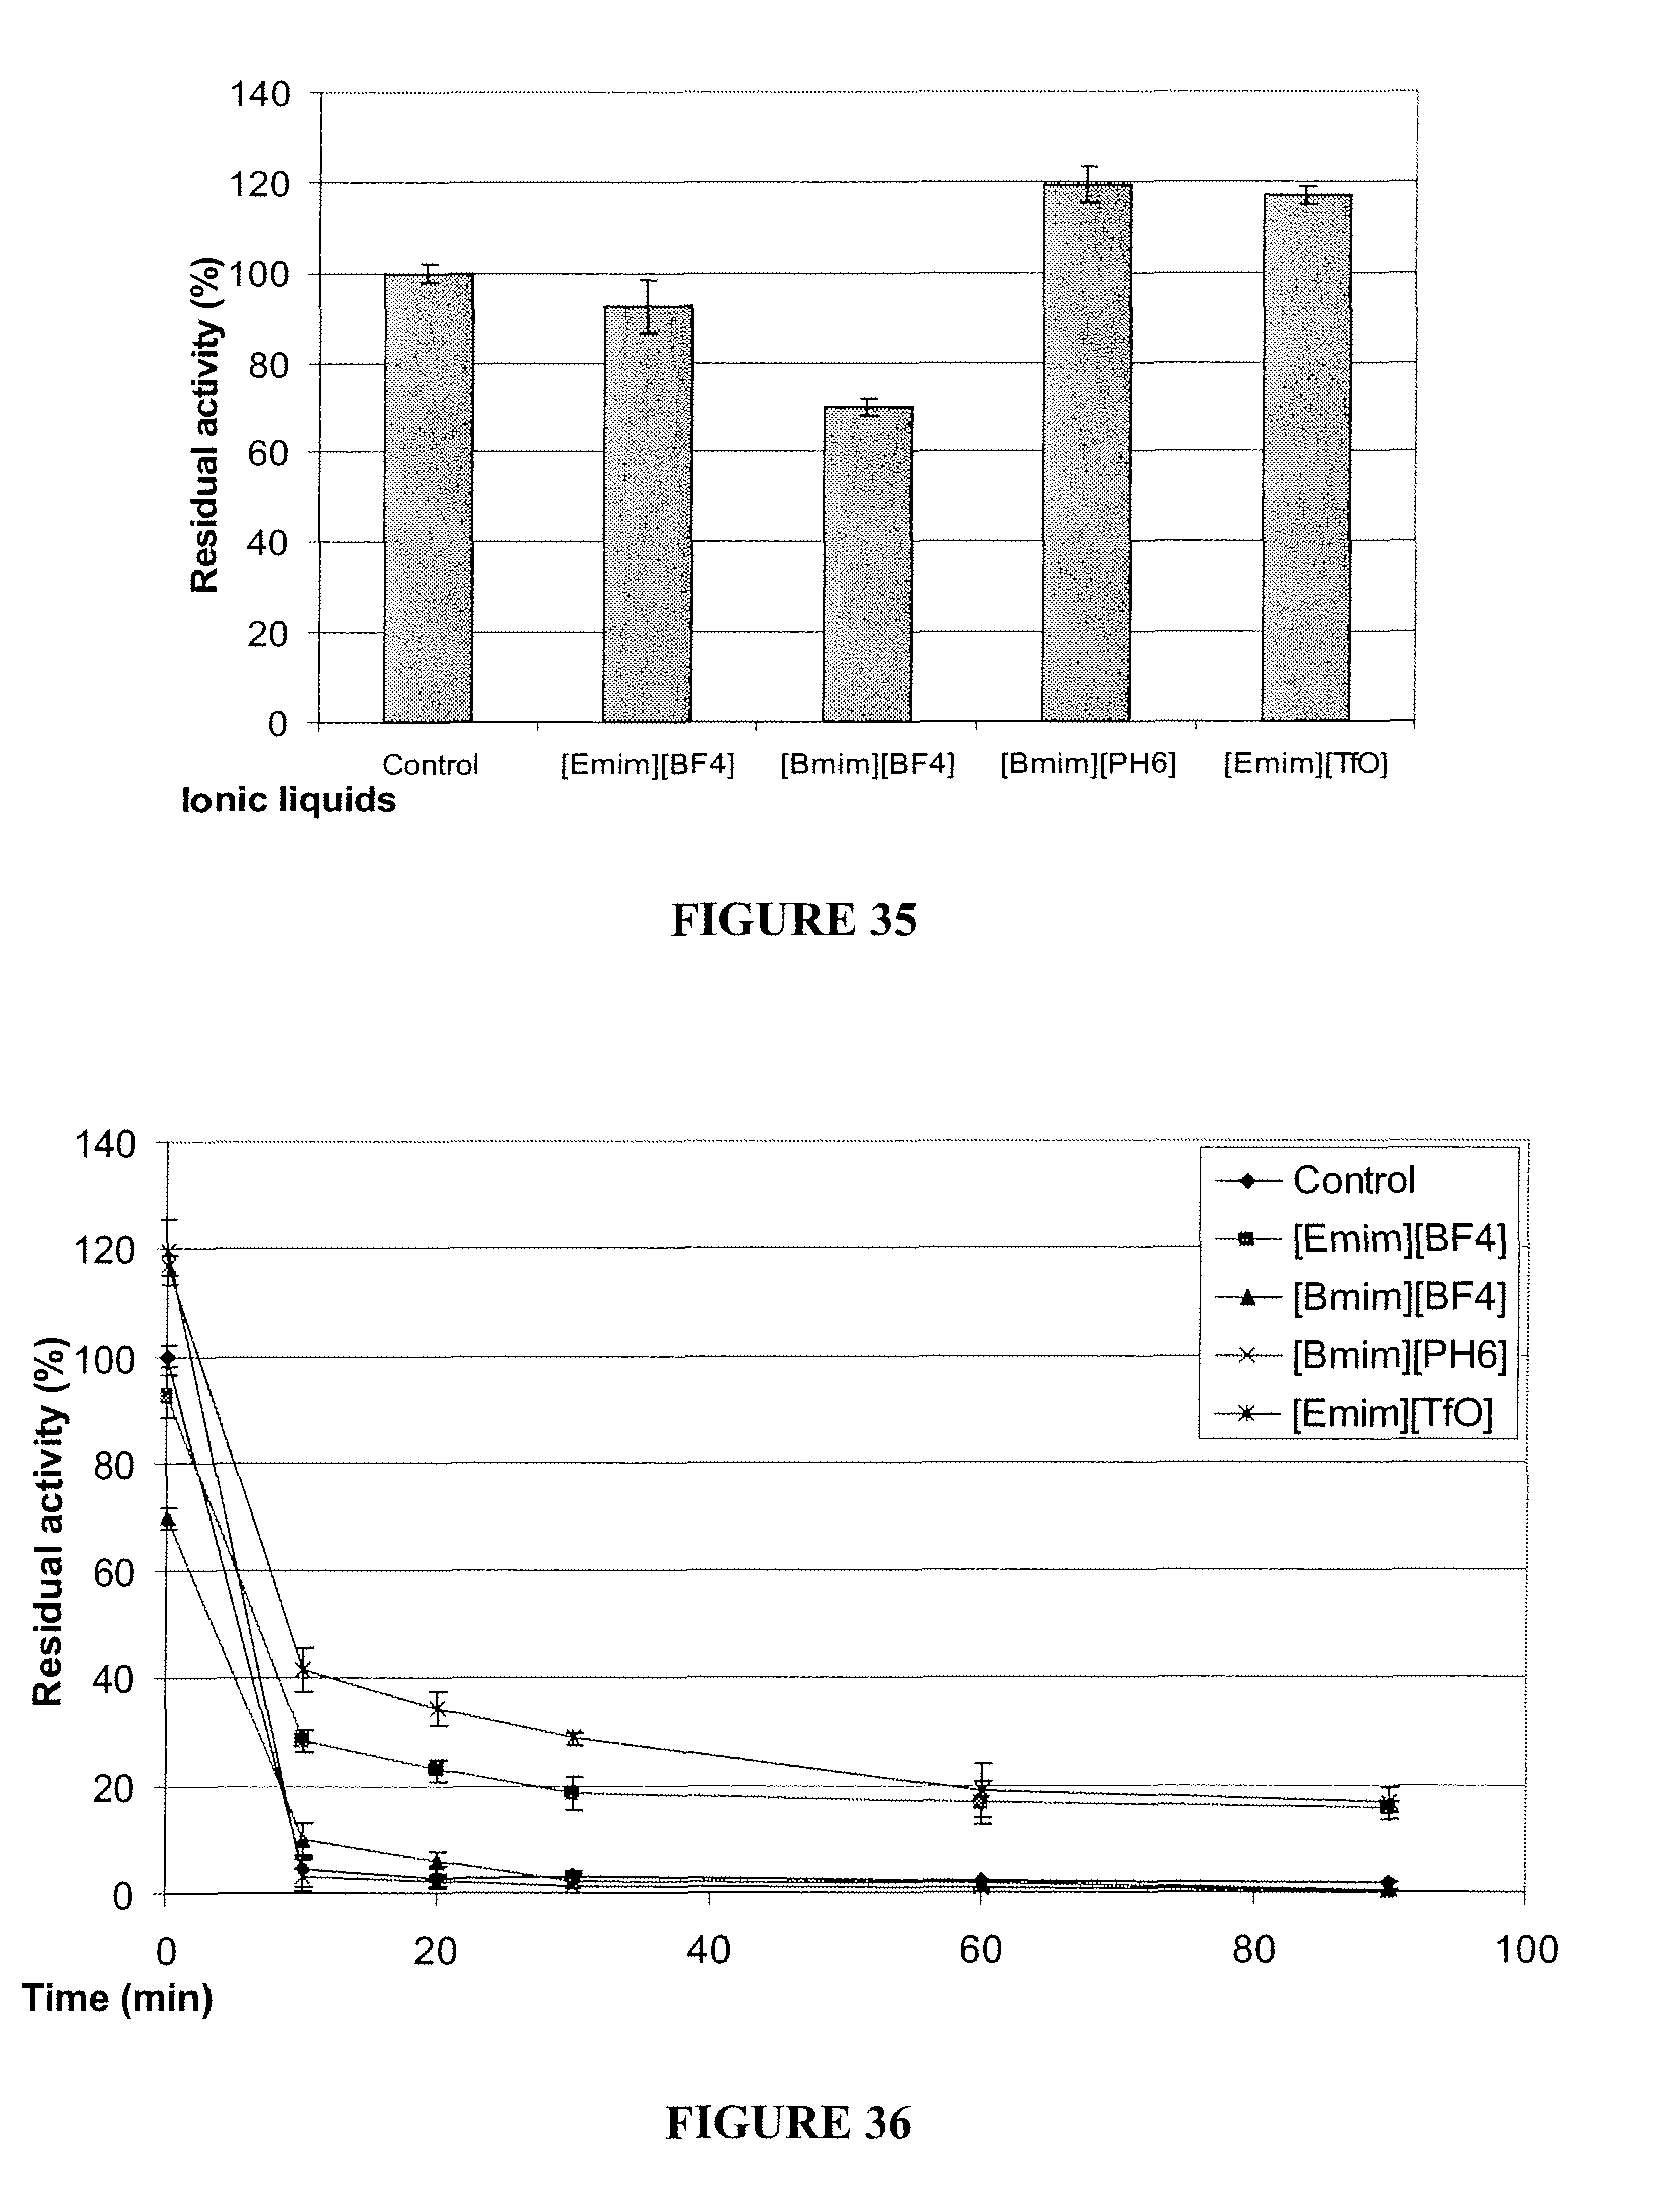 production of pure lipases Effect of different oils on the lipase production the oil included in the lipase production media is utilized by the lipase producers as the carbon source and also it induces lipase production (12) we used different types of oils as the sole carbon source in the production media.